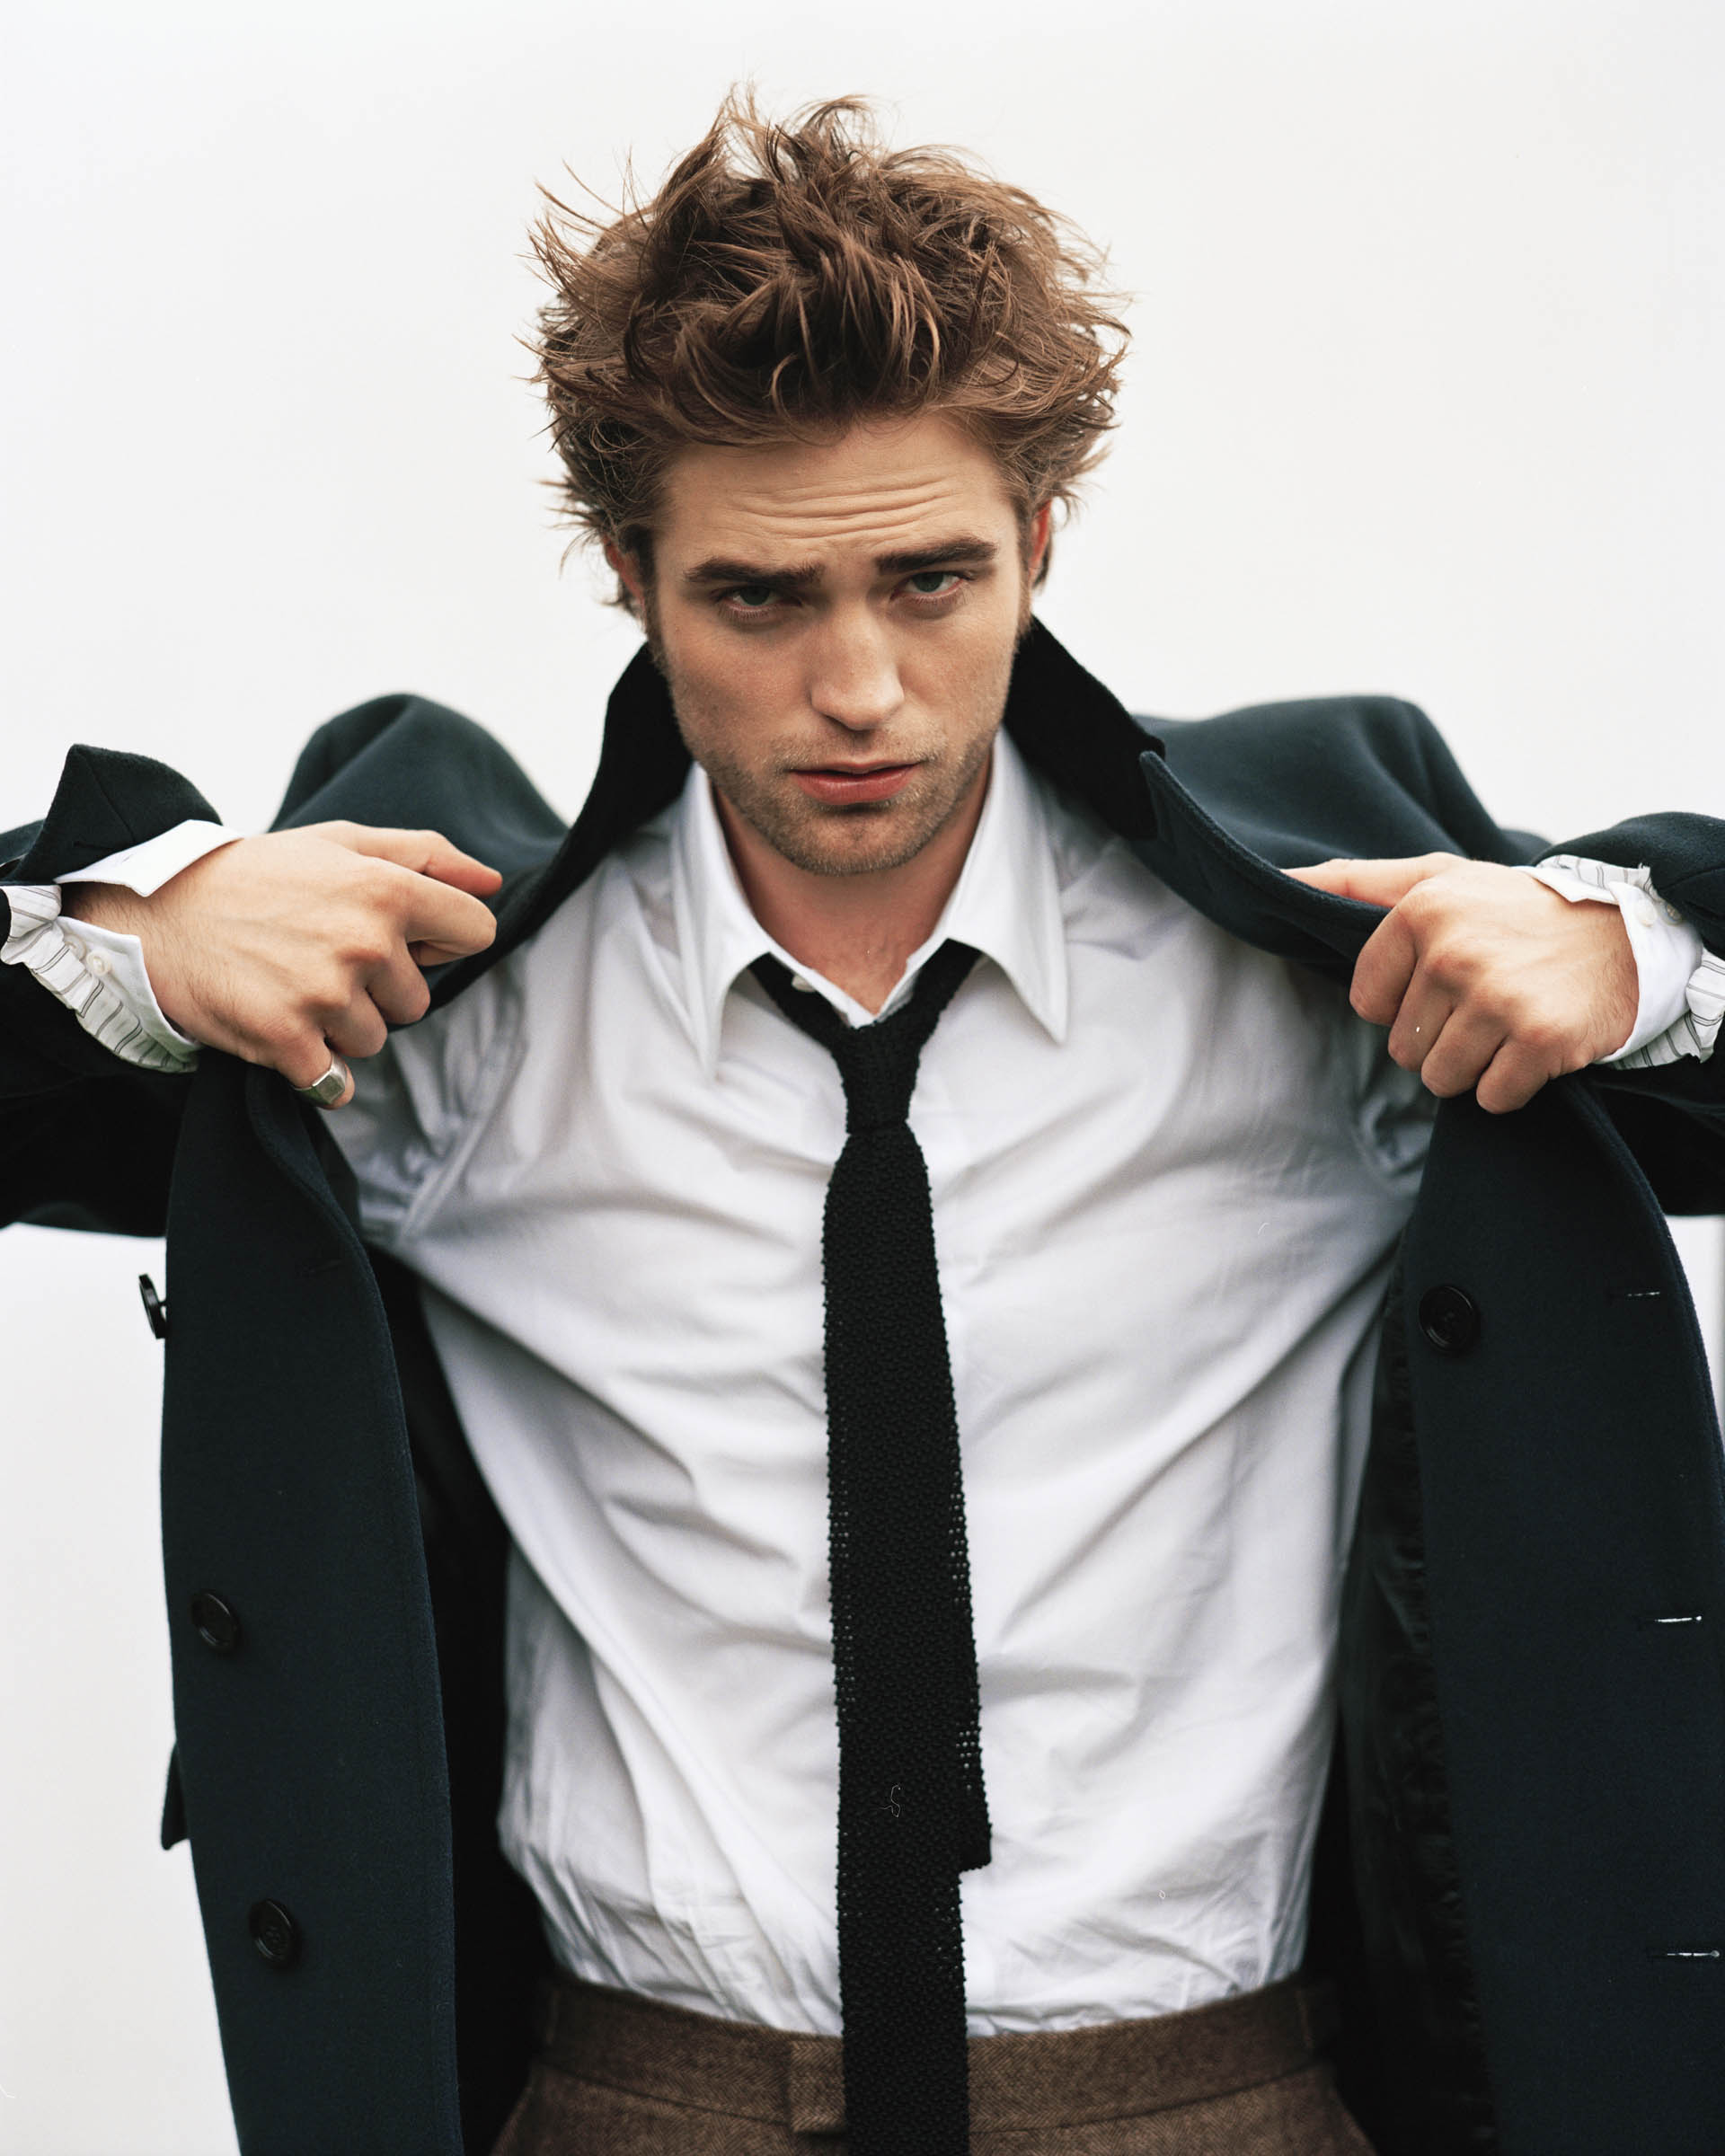 Old Robert Pattinson Outtakes Now In HQ